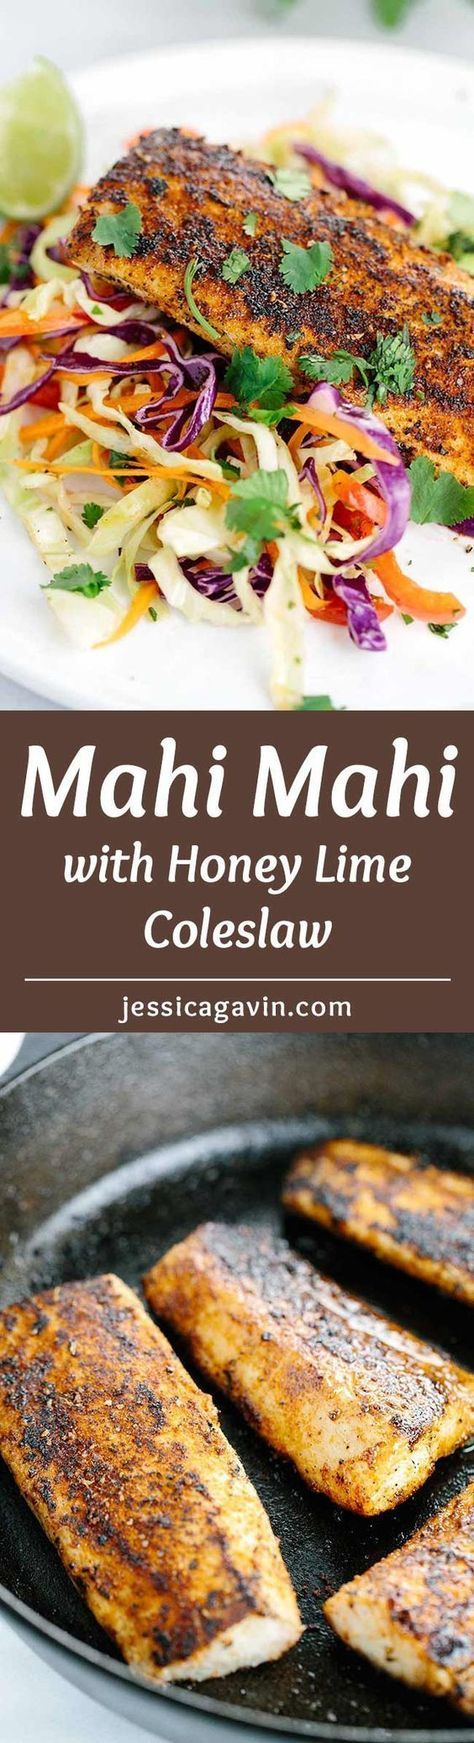 Pan Seared Mahi Mahi with Honey Lime Coleslaw - The fish in this recipe are coated with a blend of savory and sweet spices and each fillet is served with a crunchy and refreshing honey lime coleslaw.